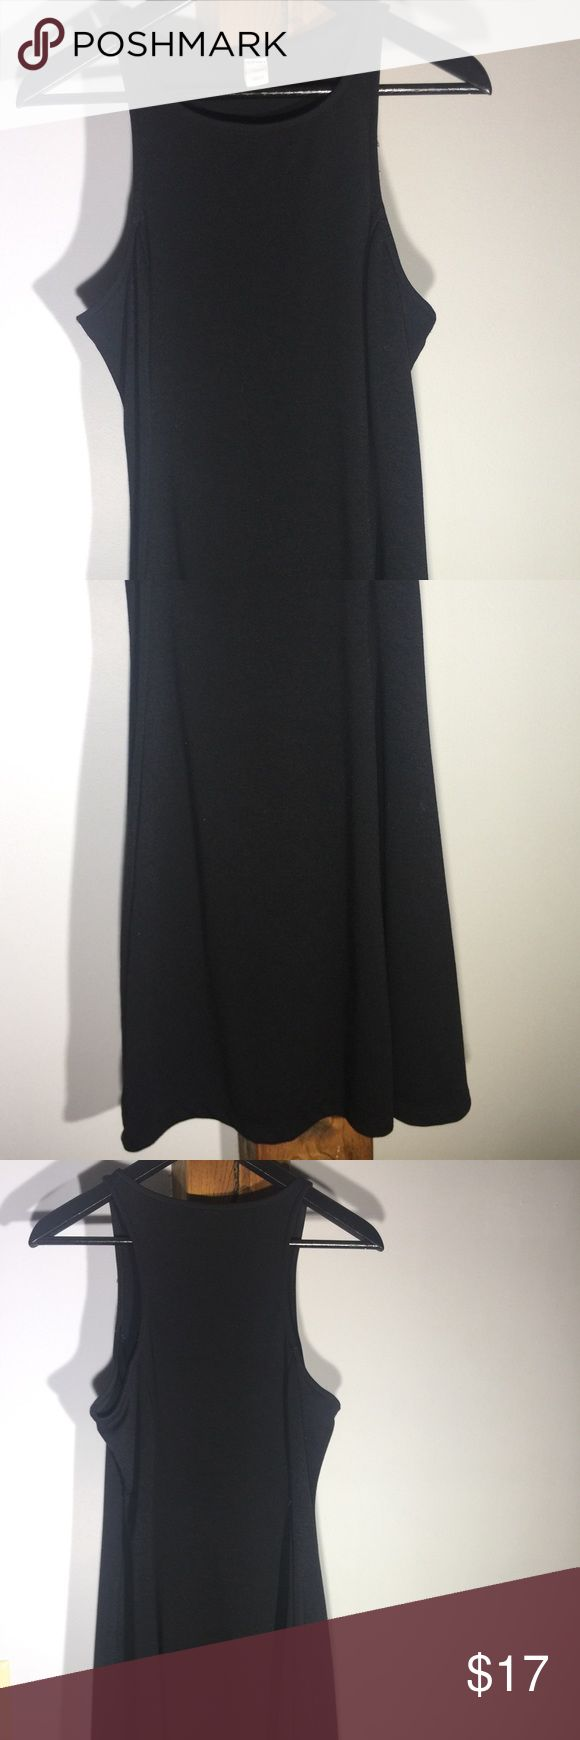 Old Navy Skater Dress Never worn Old Navy Black Skater Dress. Size M. 75% polyester, 21% rayon. Old Navy Dresses